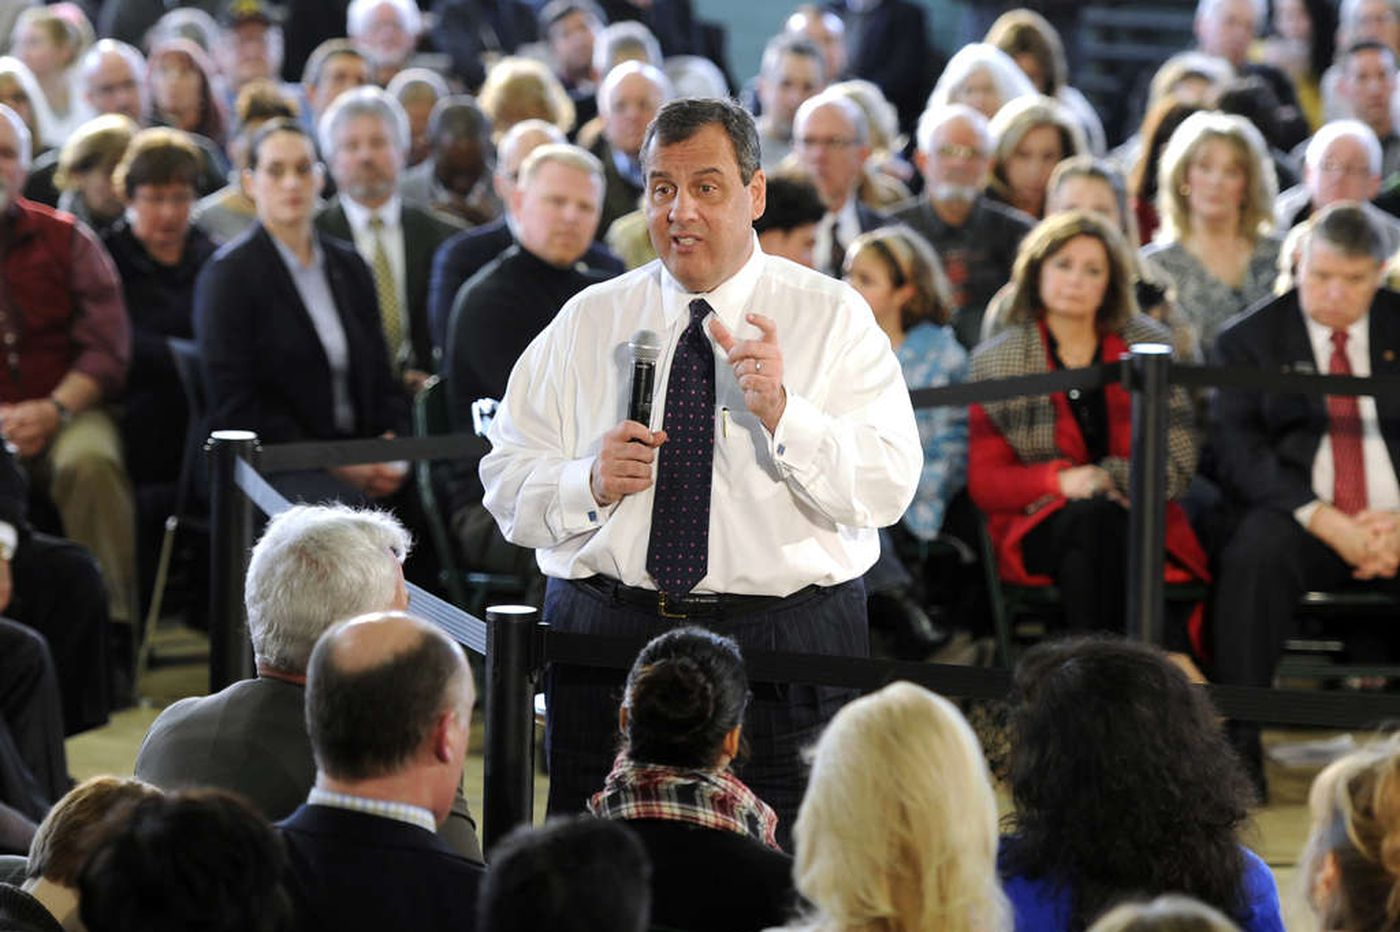 Chris Christie forms institute to bring civility back to politics